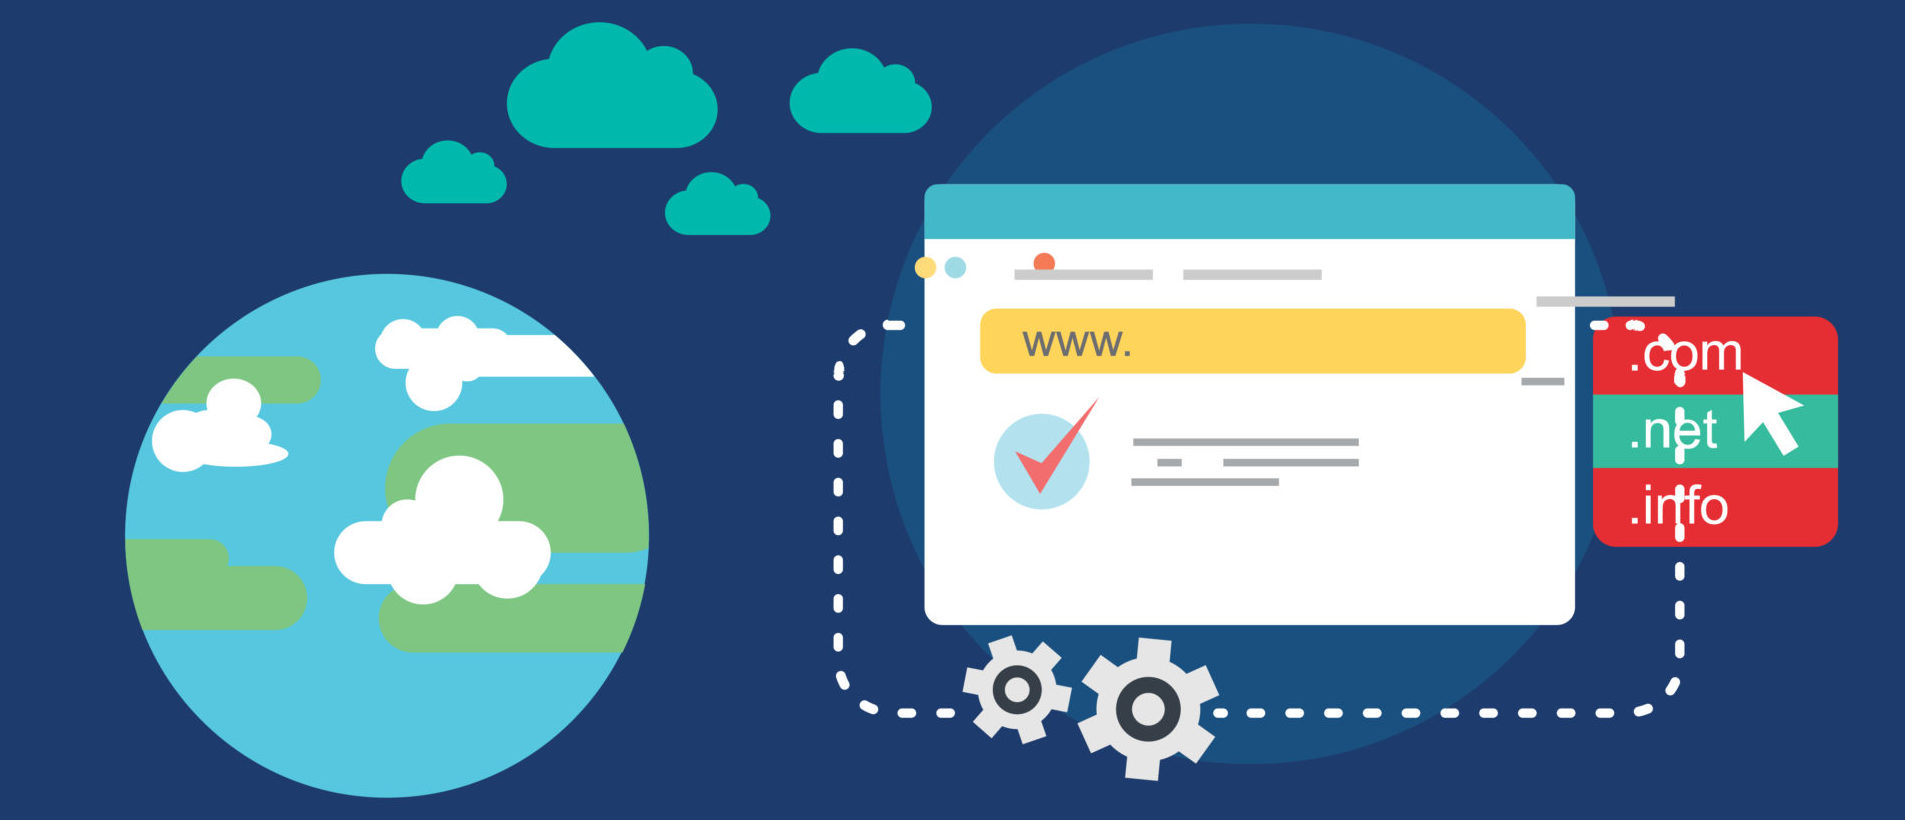 How to Locate and Gain Control of Your Website Domain